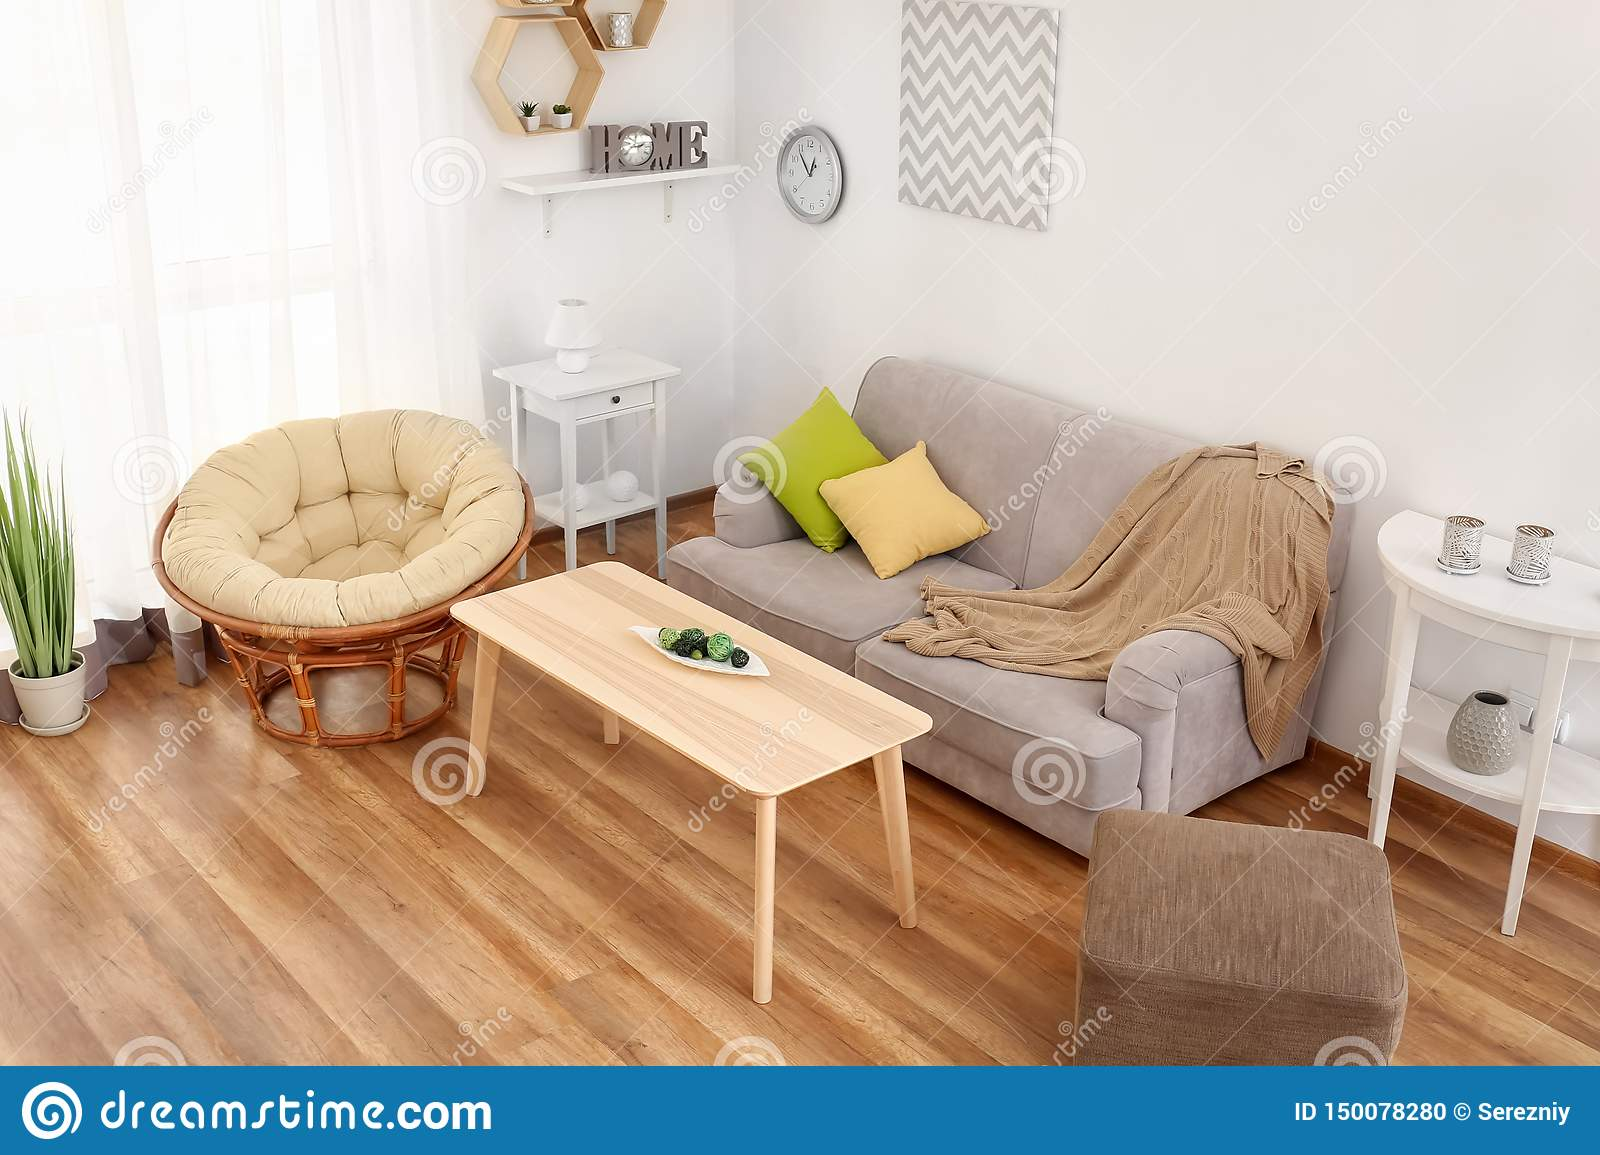 Interior of living room, view from CCTV camera